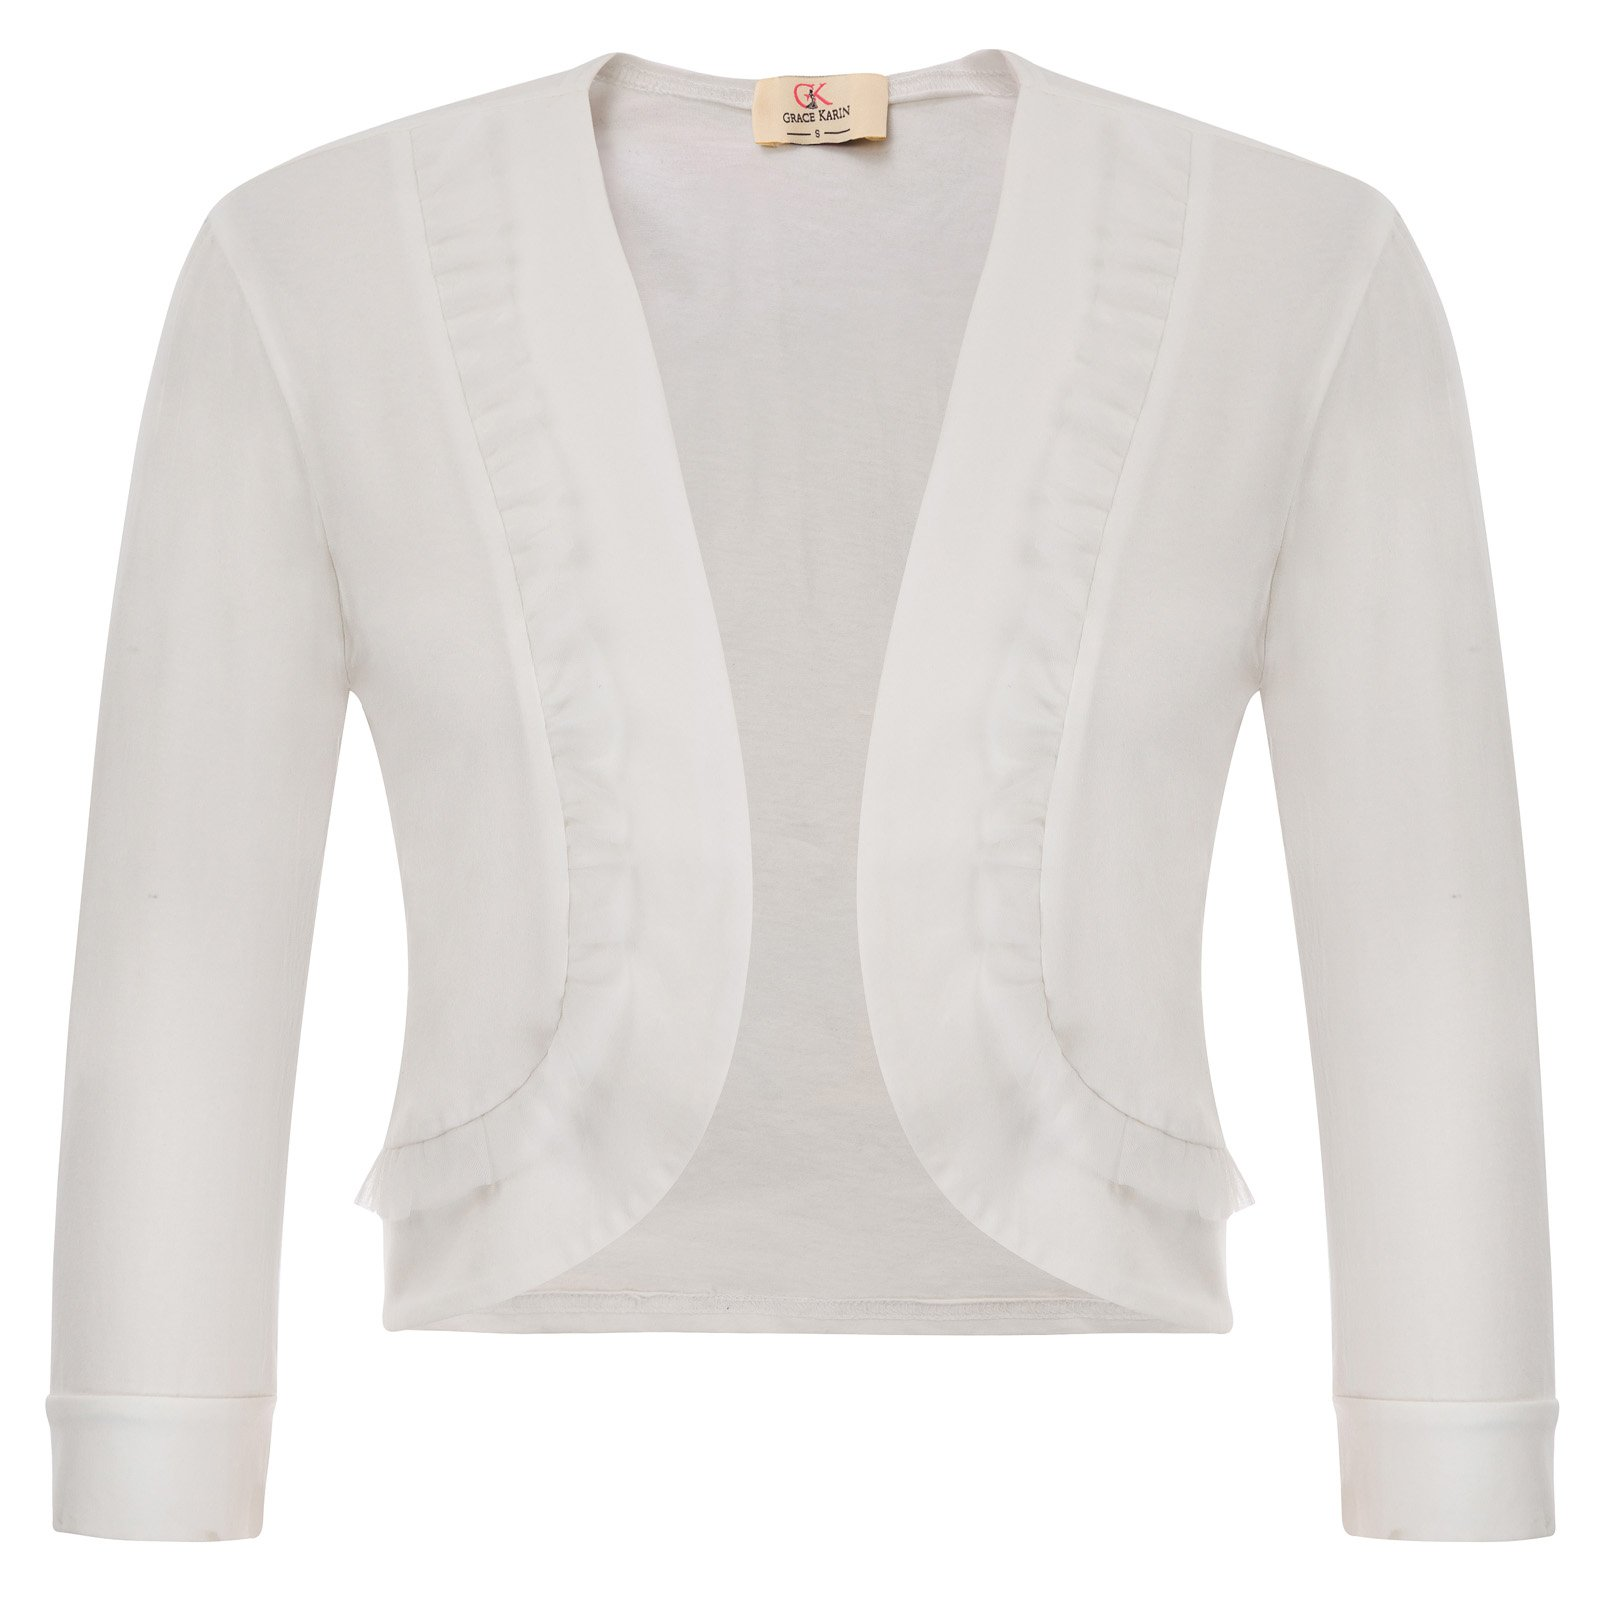 GRACE KARIN 1950s Vintage 3/4 Sleeve Crop Cardigan with Lace Ruffle (XL,Ivory 772)